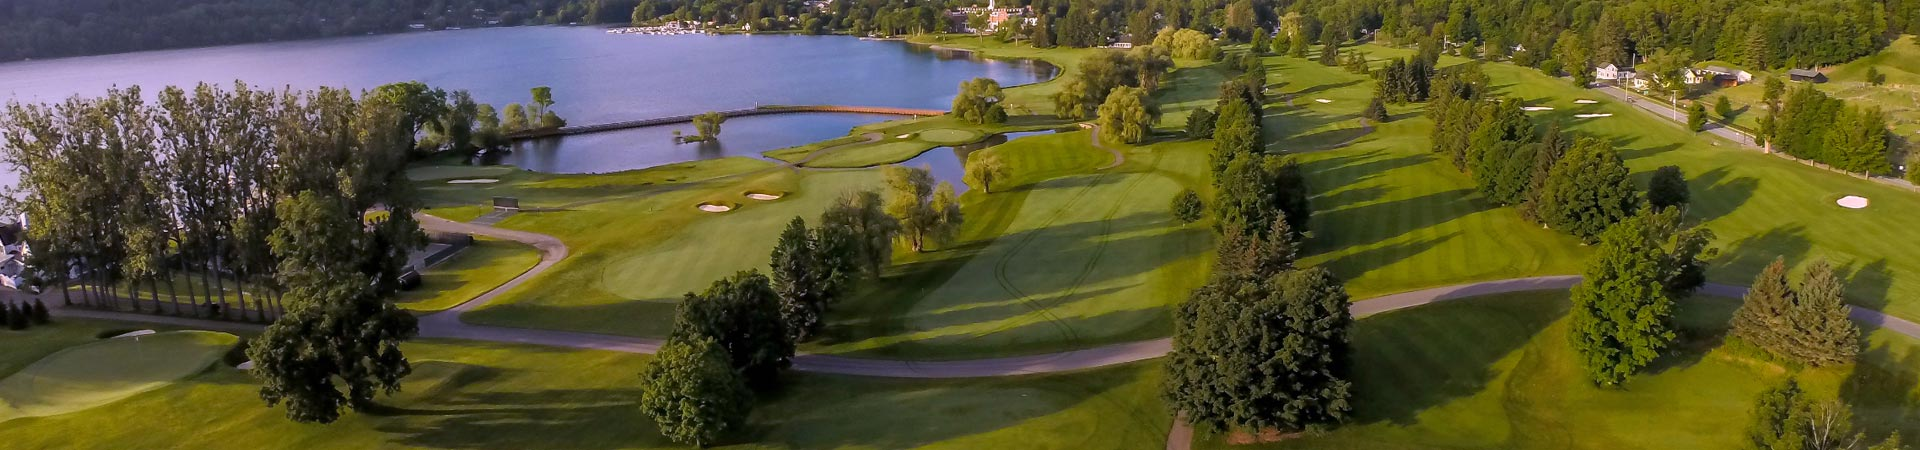 Golf at Cooperstown, New York